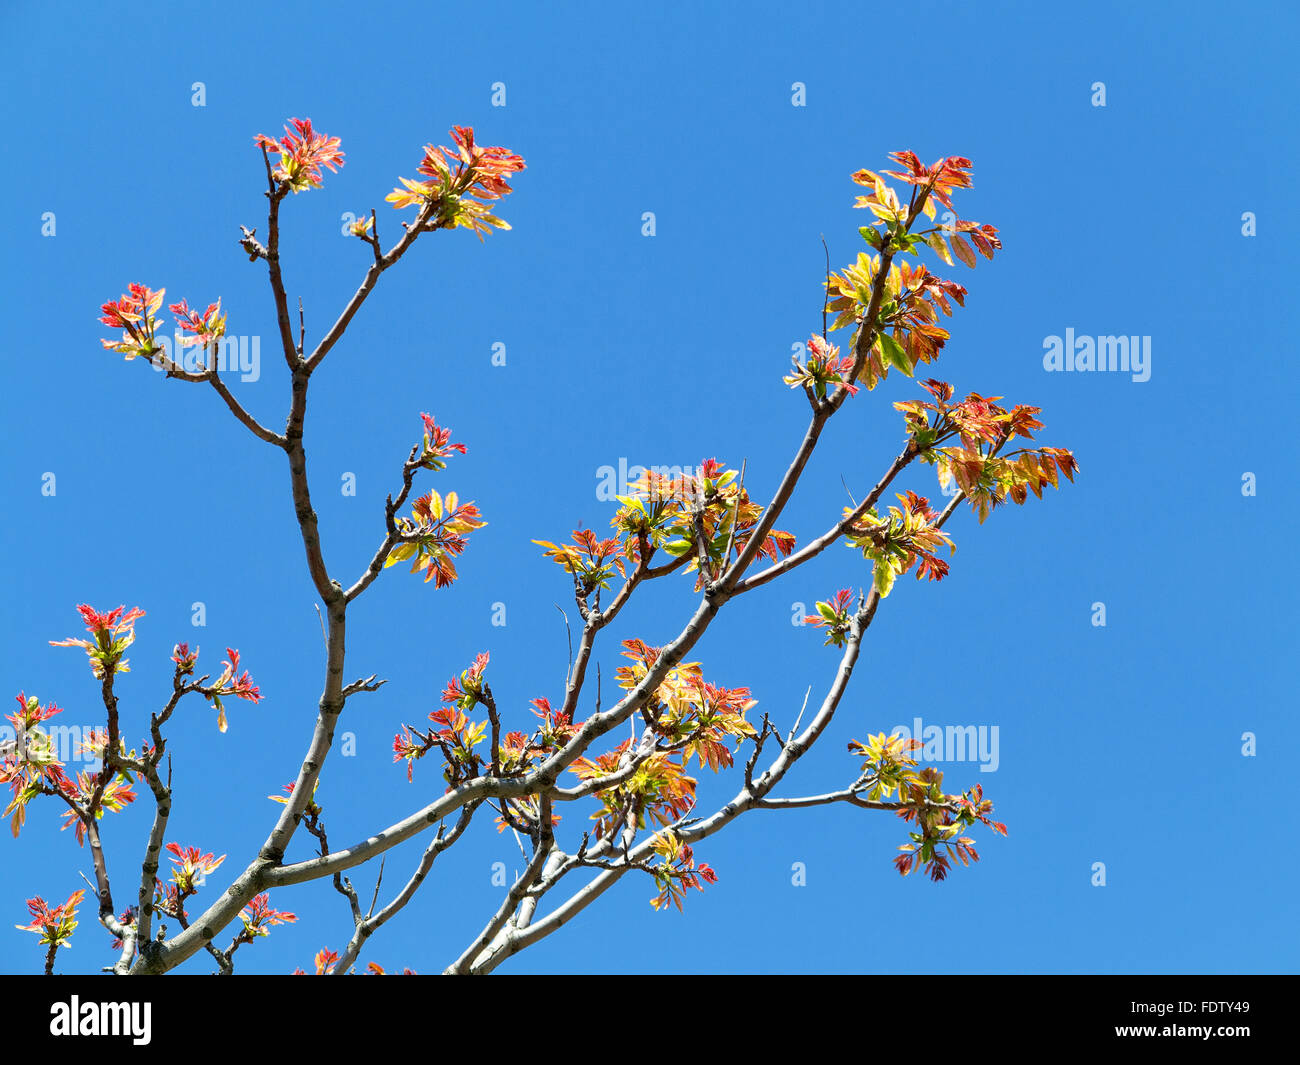 Authentic landscape branch with leaves against the sky, backlight, as a background for the formulation of advertising - Stock Image